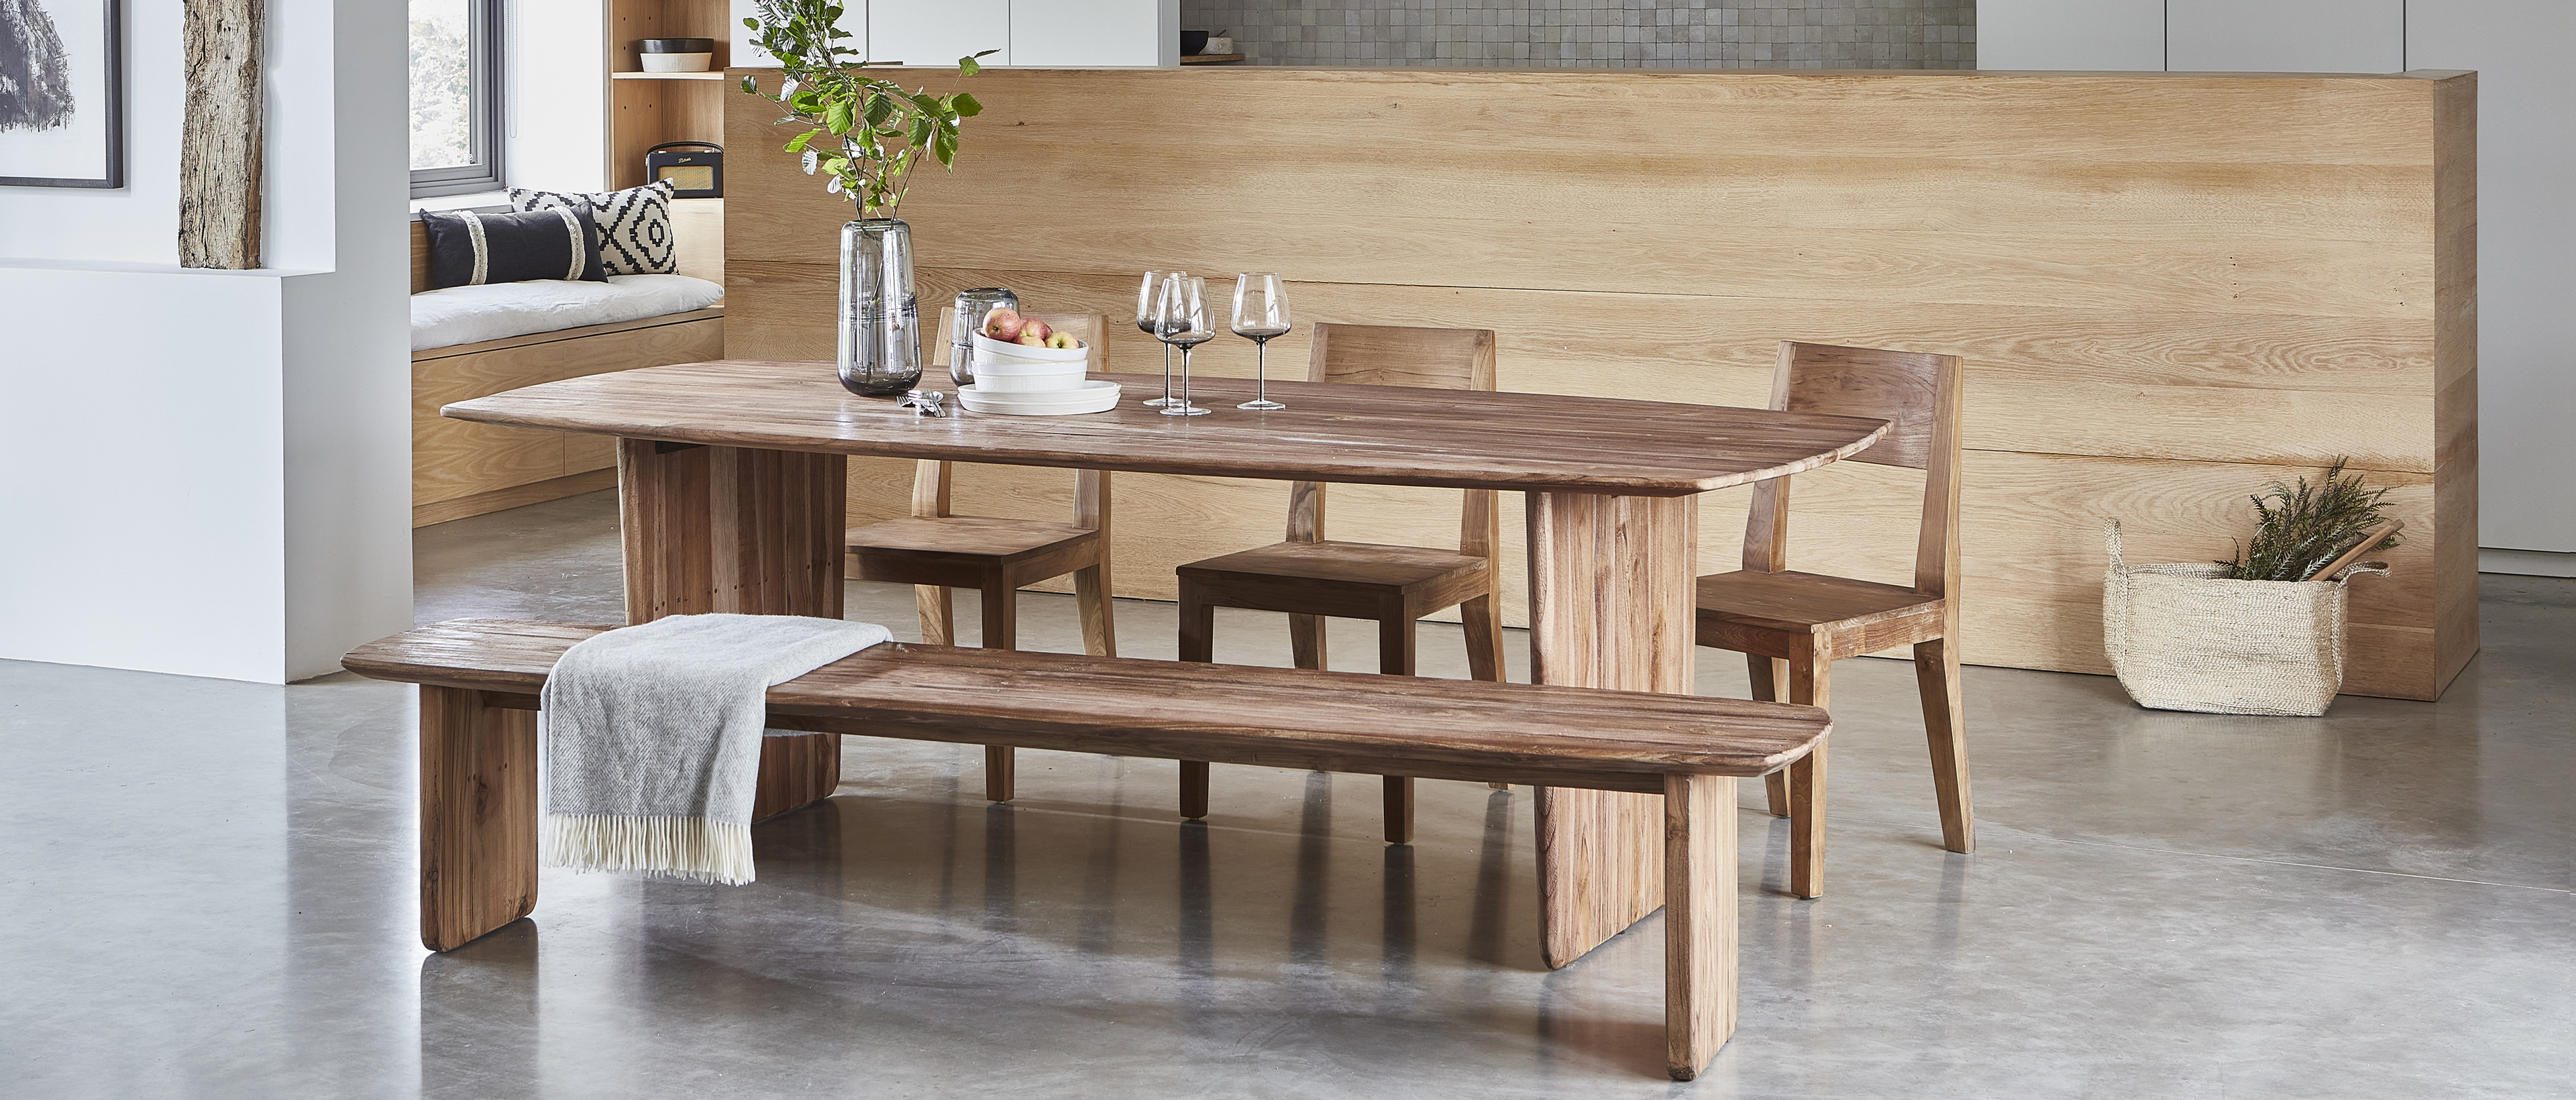 Neve dining table